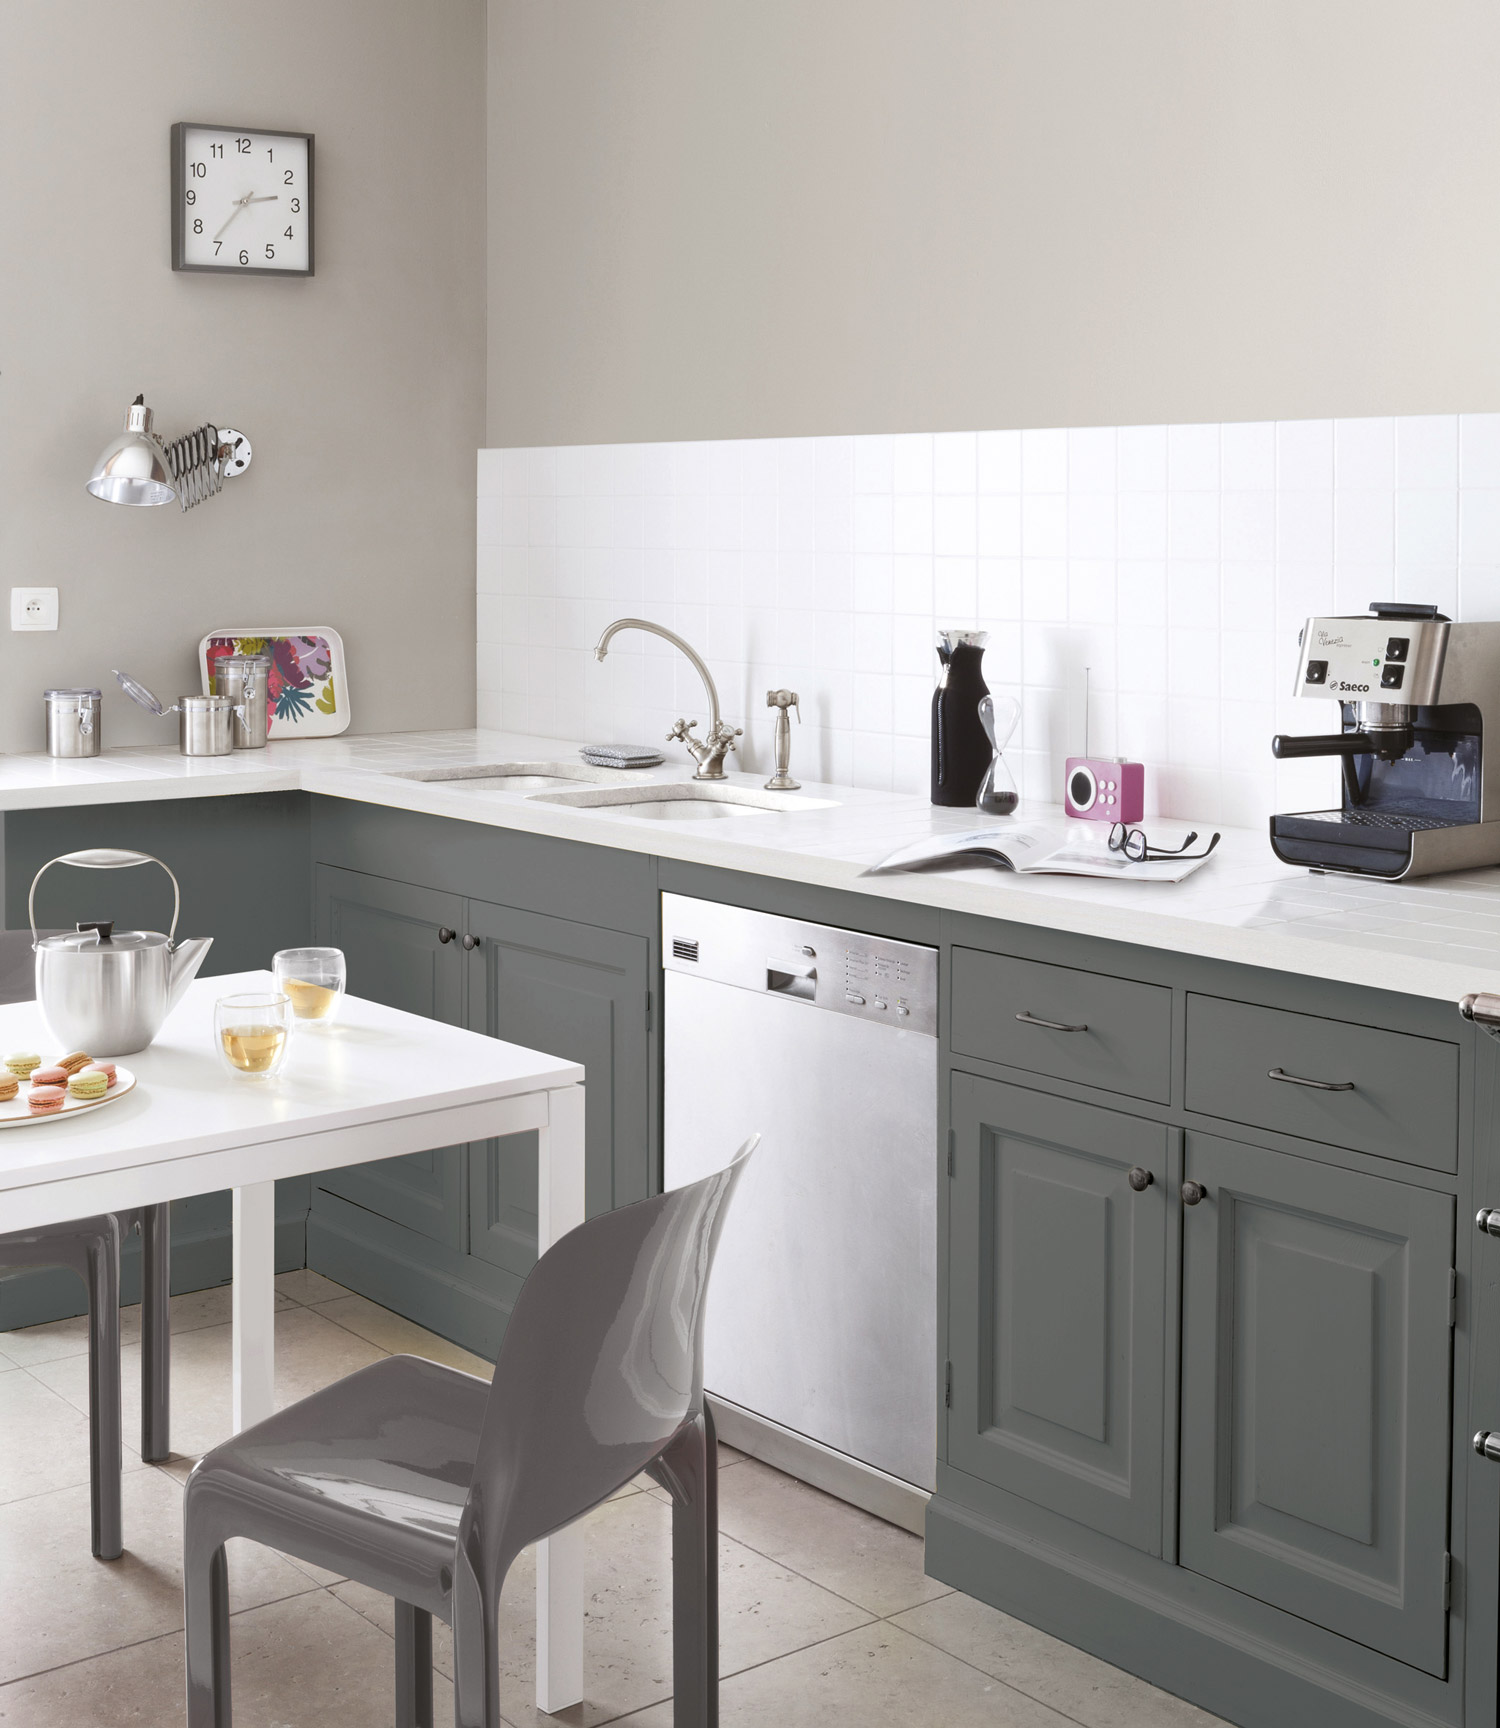 Are Painted Kitchen Cabinets Durable: Paints For Your Interior Furniture